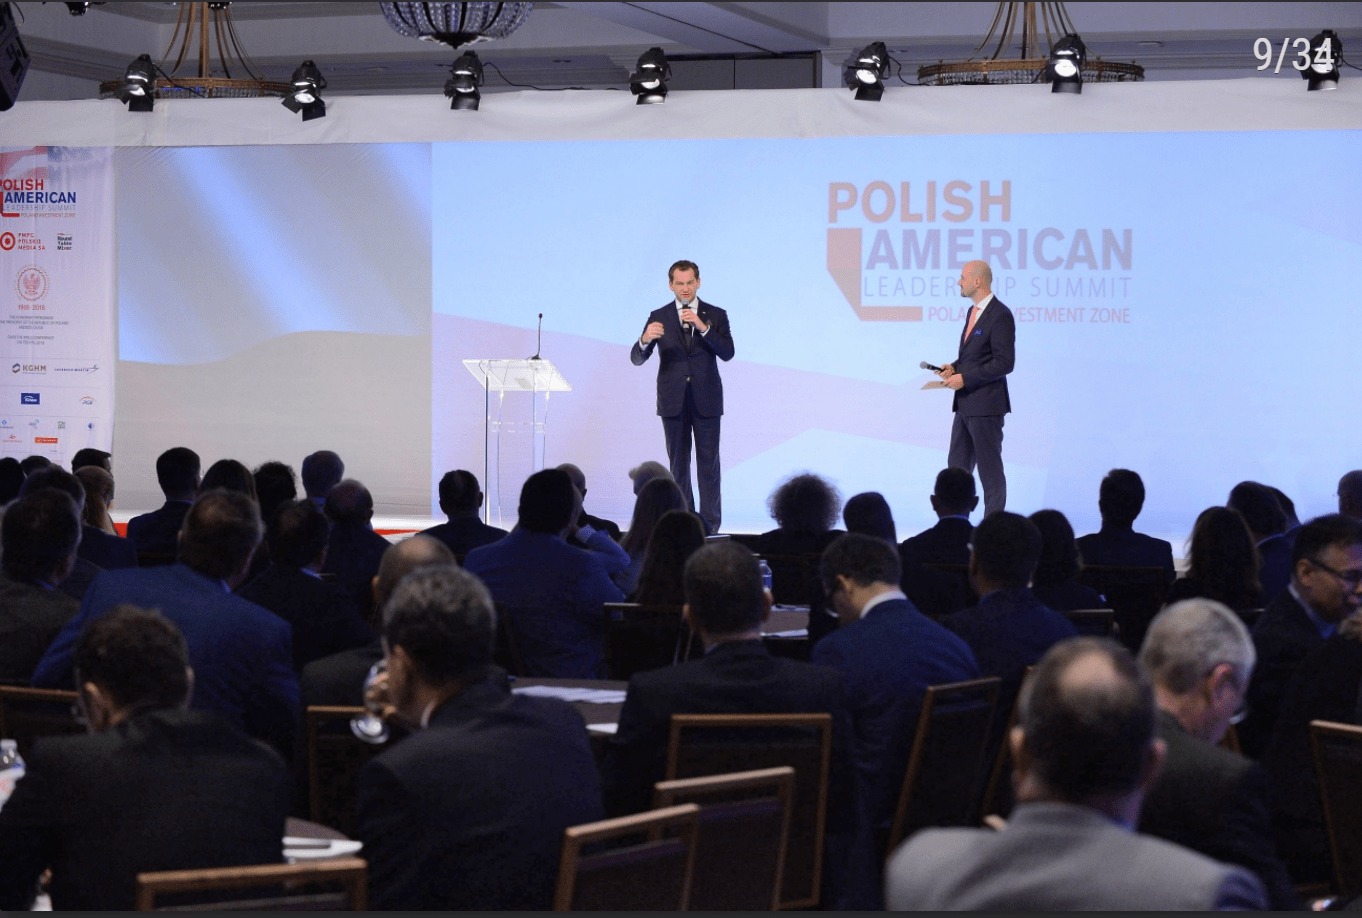 Investment, innovation, deepening economic cooperation – a summary of the Polish-American Leadership Summit: Poland Investment Zone